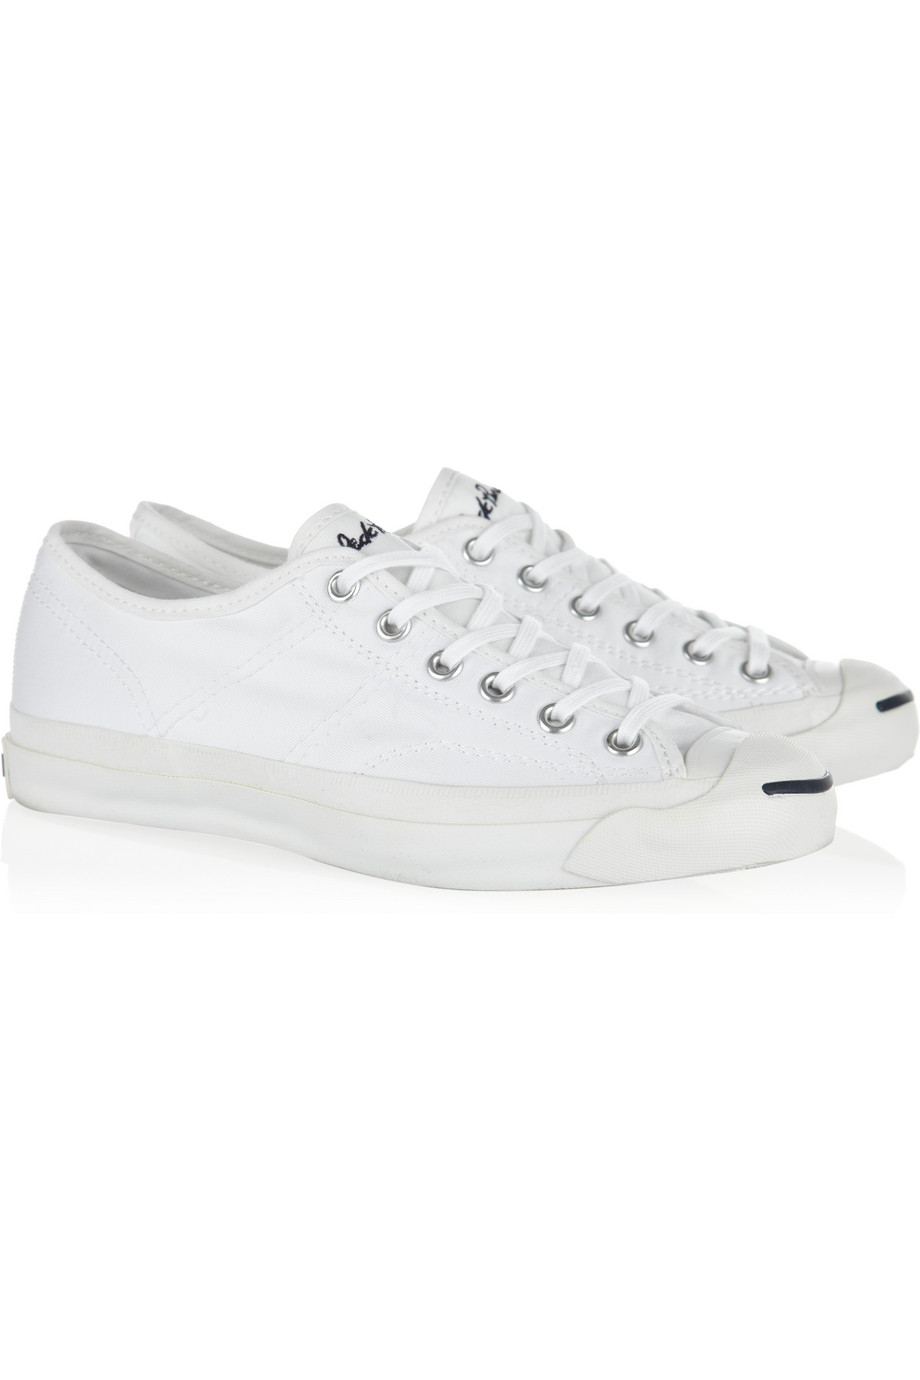 c4161be4e983 Lyst - Converse Jack Purcell Helen Canvas Sneakers in White